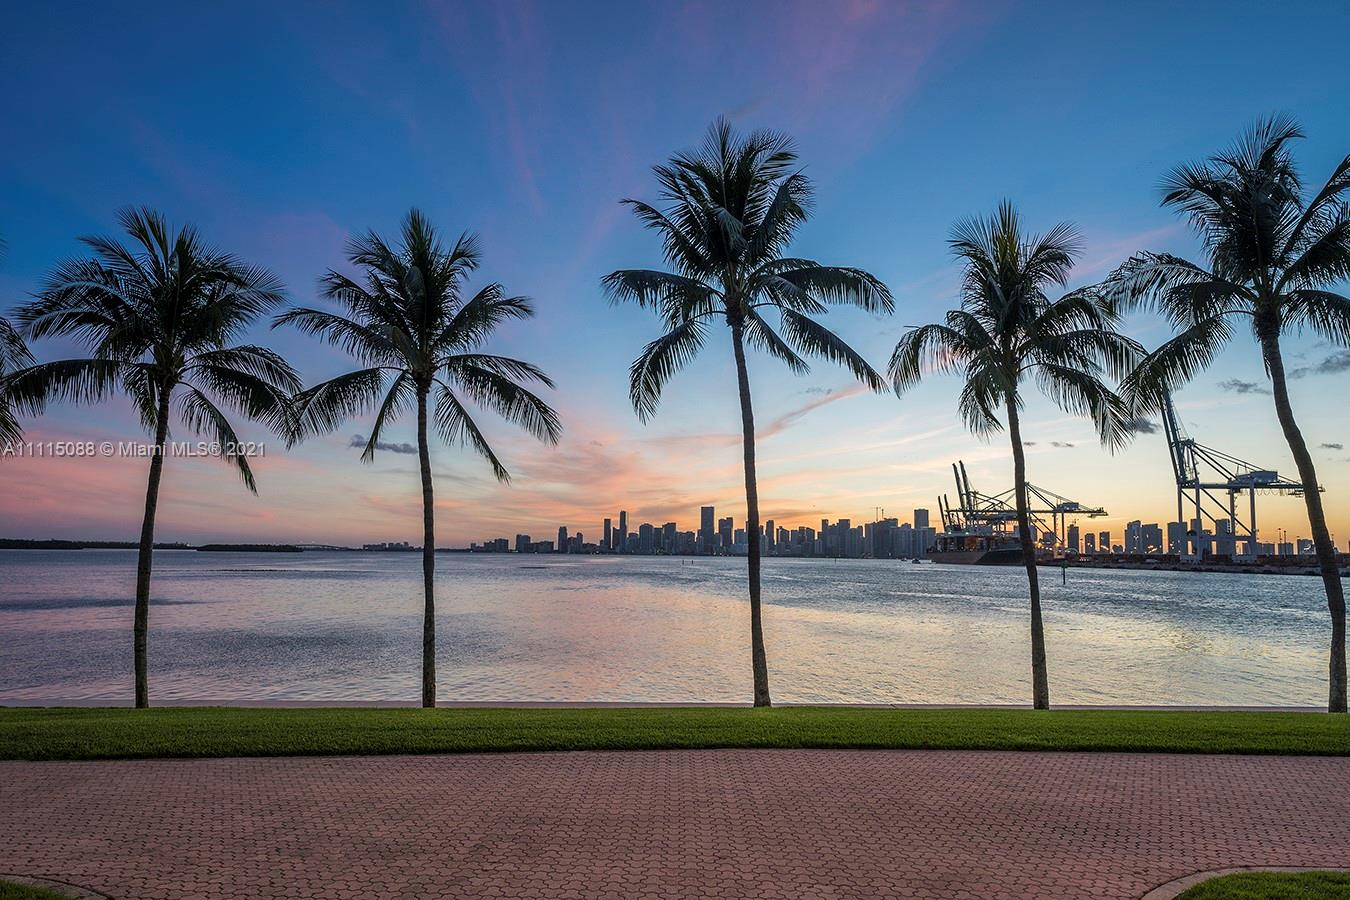 BAYVIEW FISHER ISL NO TWO Condo,For Sale,BAYVIEW FISHER ISL NO TWO Brickell,realty,broker,condos near me